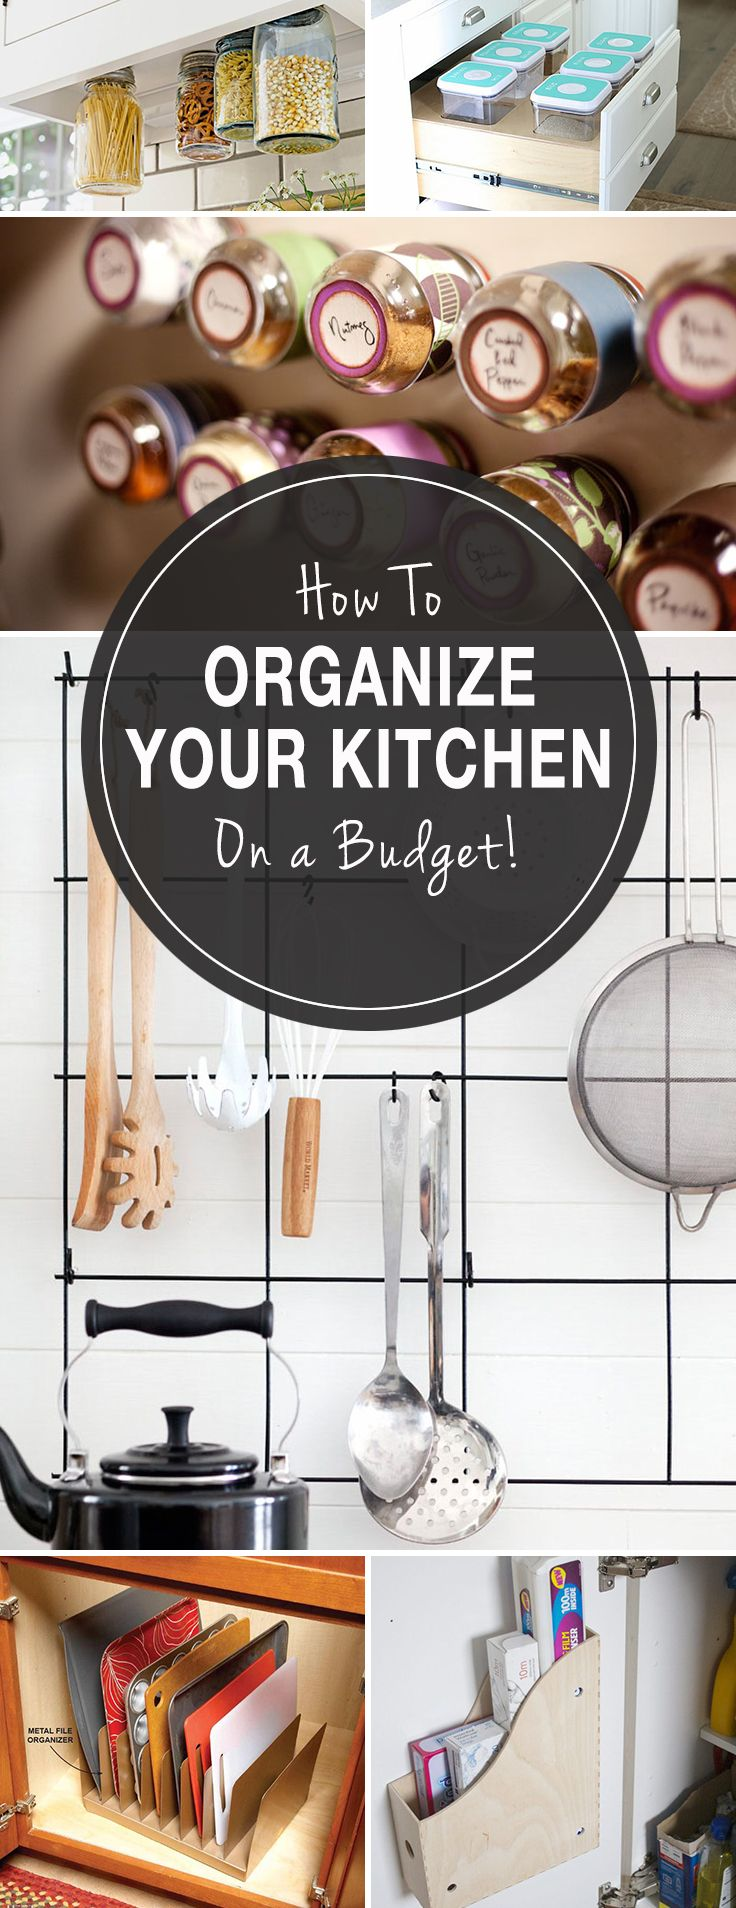 How to Organize Your Kitchen On a